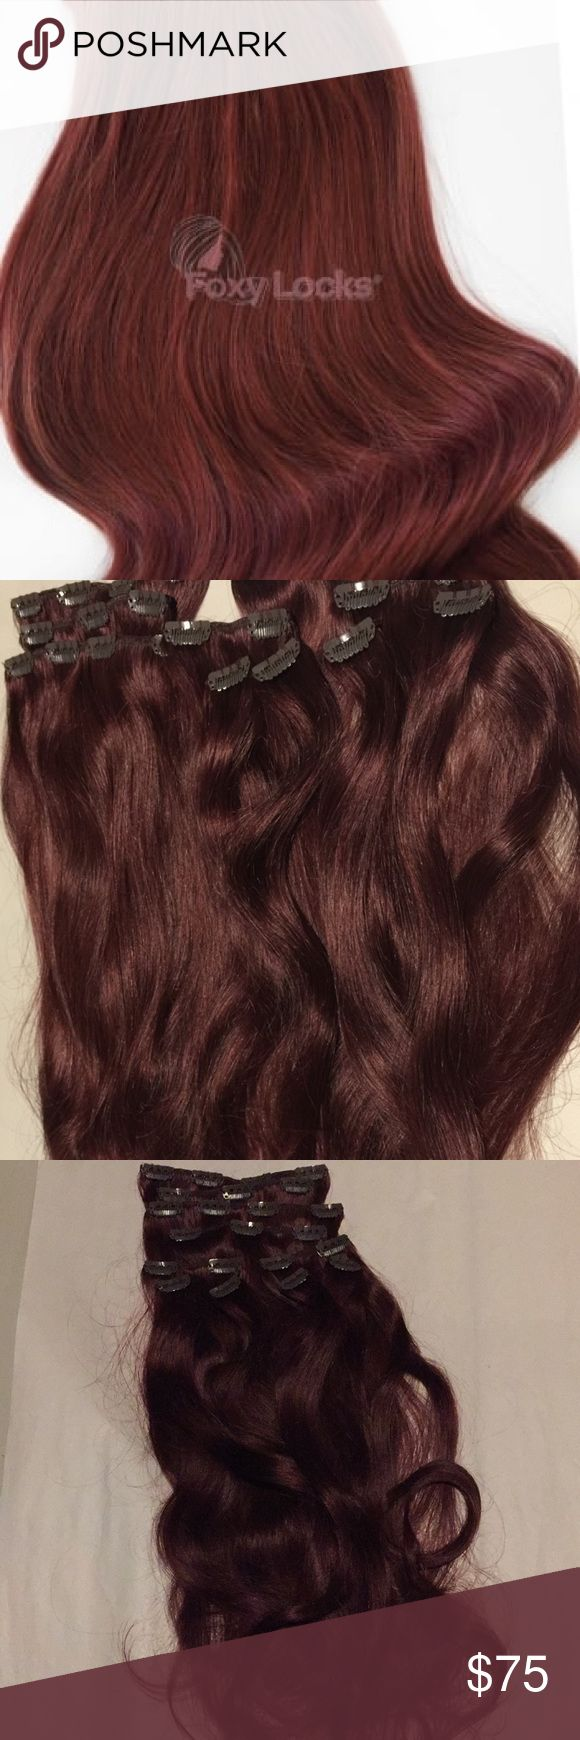 "Mahogany Red Clip In Human Hair Extensions New without tags! Never worn!   Colour: Mahogany Red  Weight: 120g     - Made from Remy Human Hair  - 10 wefts (Full head):  Two x 8"" wide with 4 clips Two x 6"" wide with 3 clips Two x 4"" wide with 2 clips Four x 2"" wide with 1 clip     The weight of this stunning set is 120 grams - Suitable for finer, longer hair.  Get your hands on beautiful clip in hair extensions. Add volume & length with Foxy Locks Clip ins. Foxy Locks Accessories Hair…"